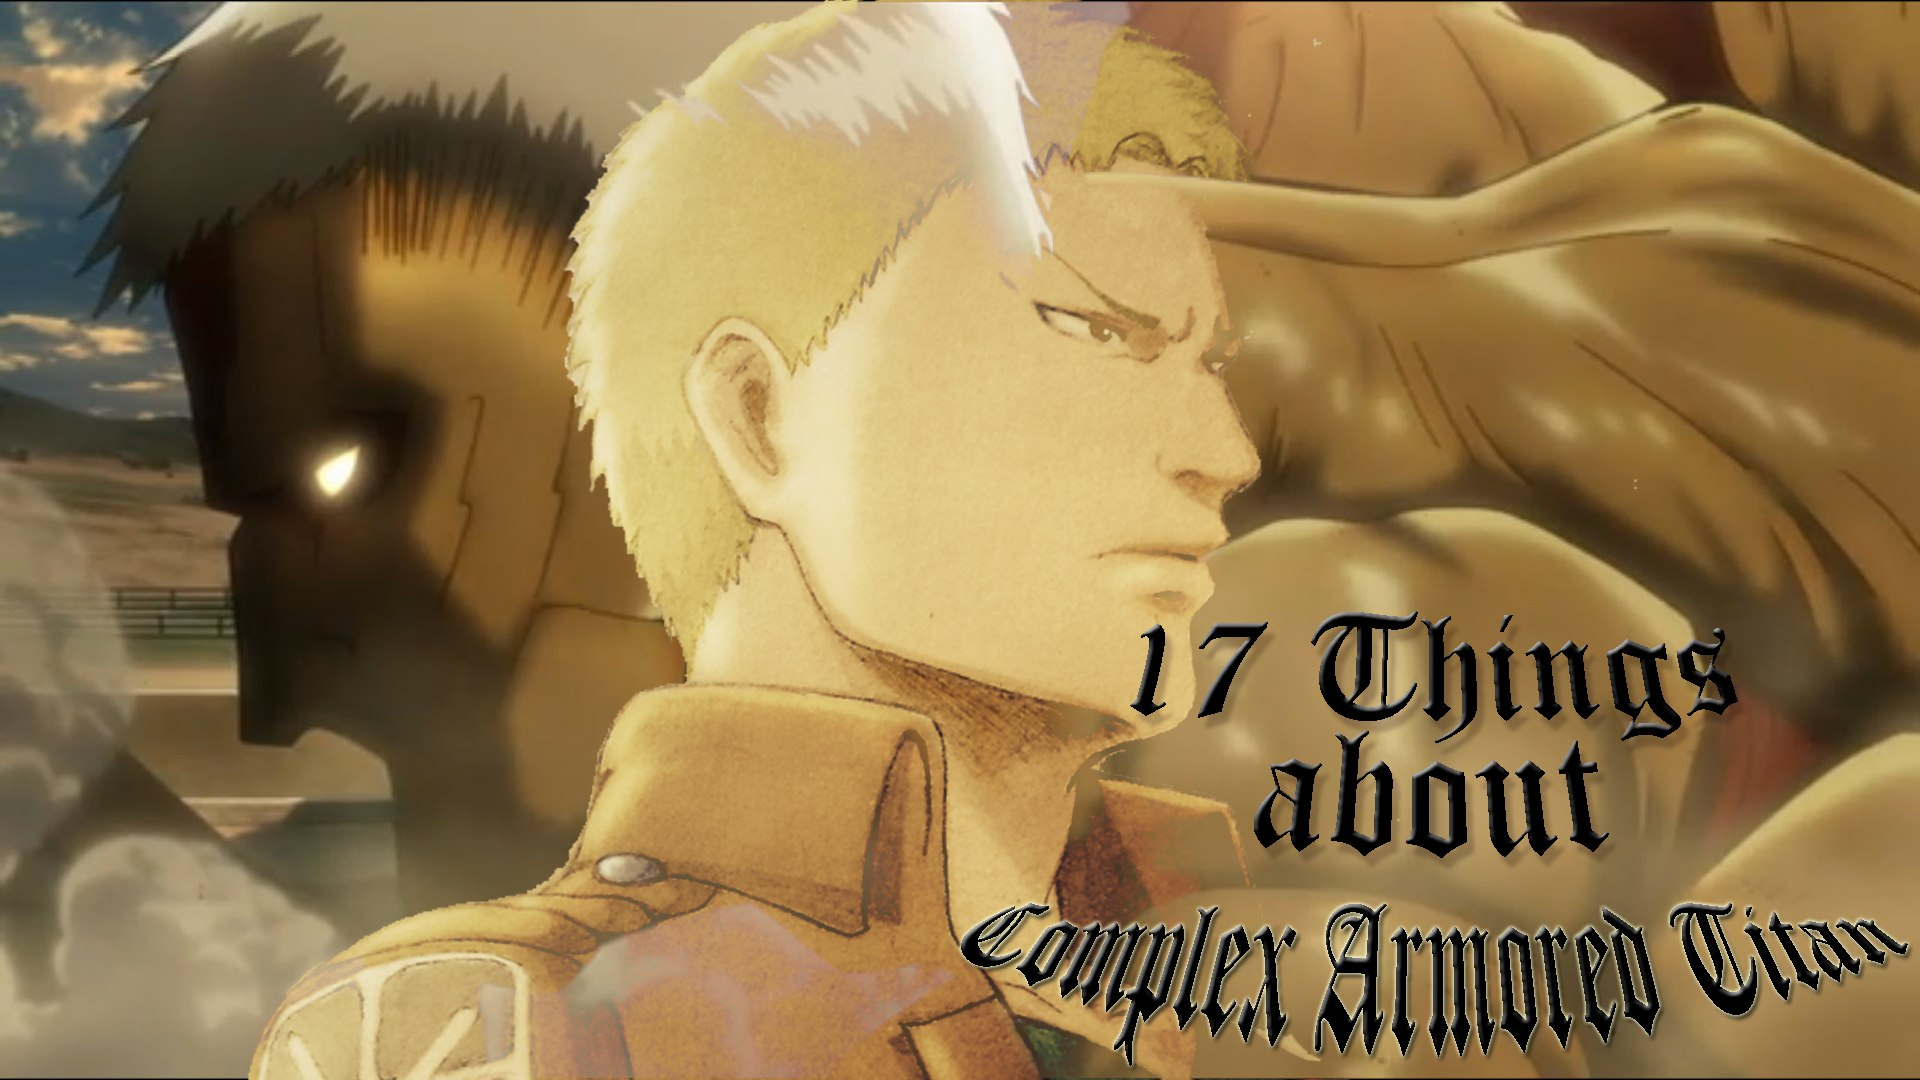 17 Facts about Attack on Titan Complex Character Armored Titan